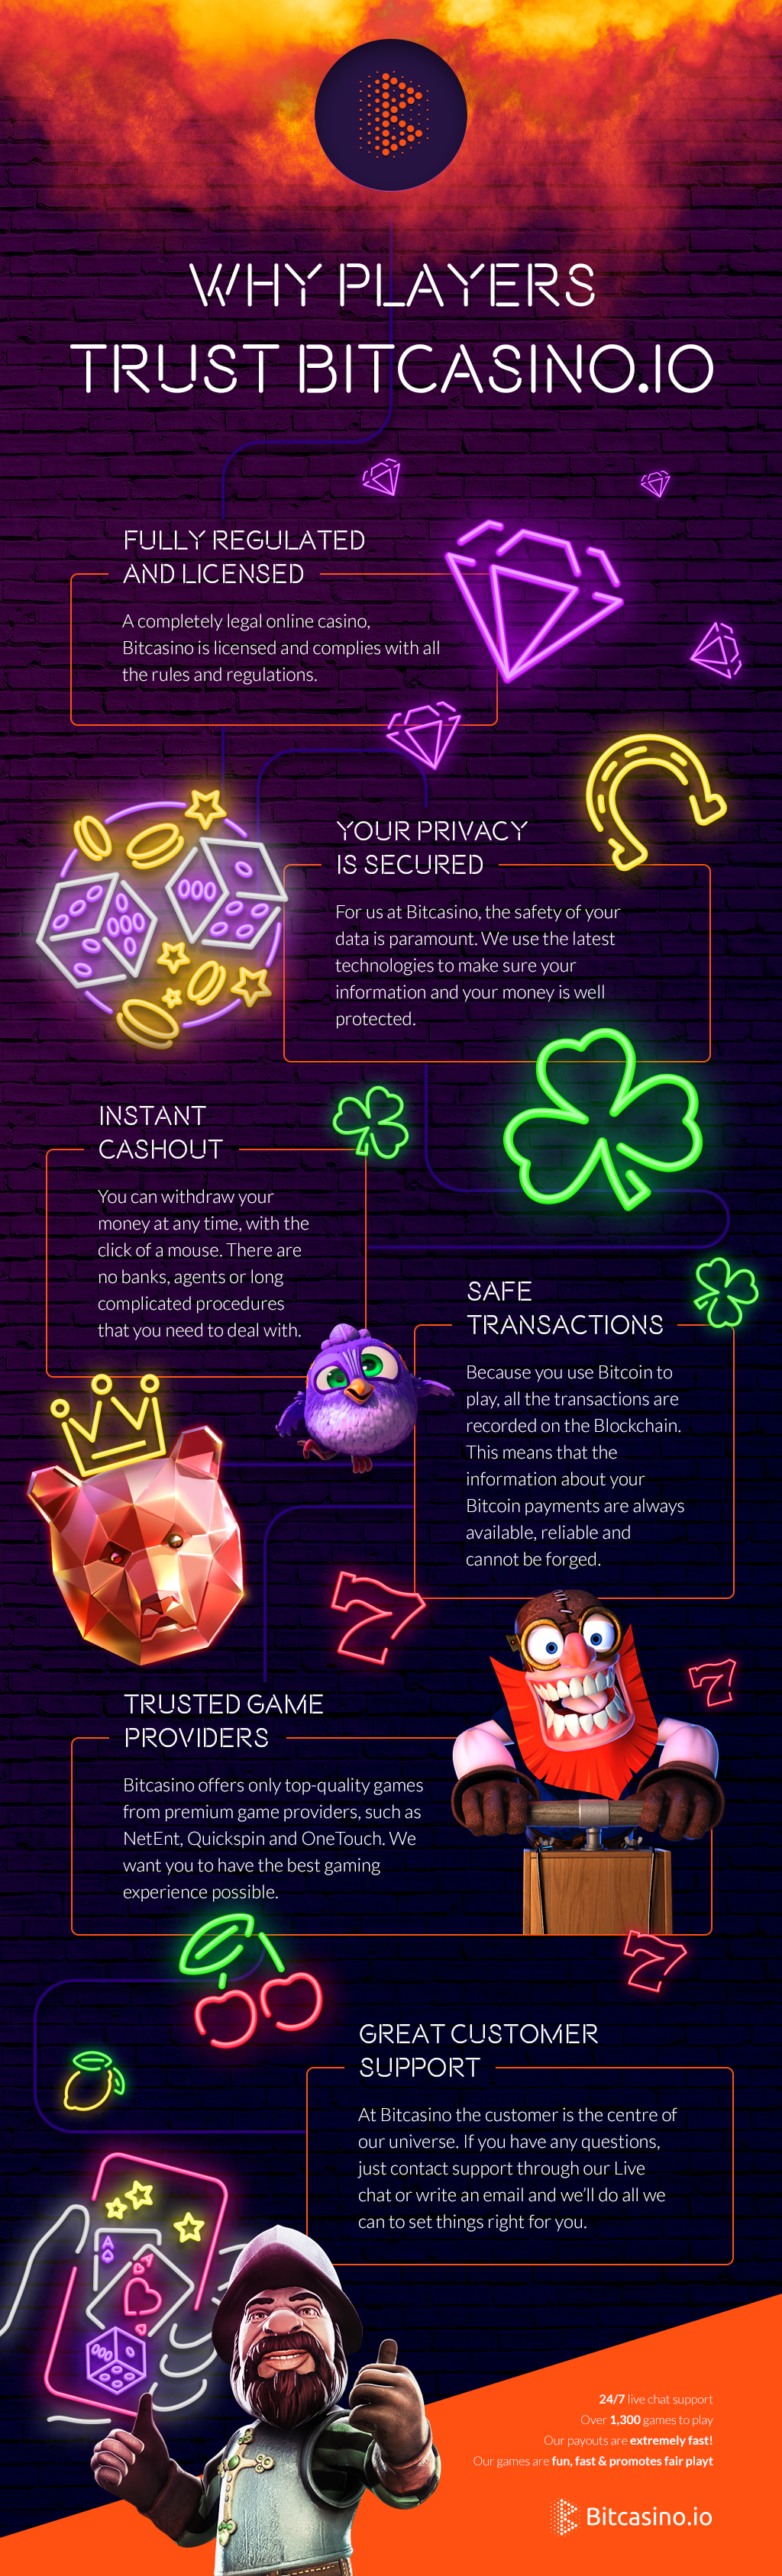 Why Players Trust Bitcasino Infographic